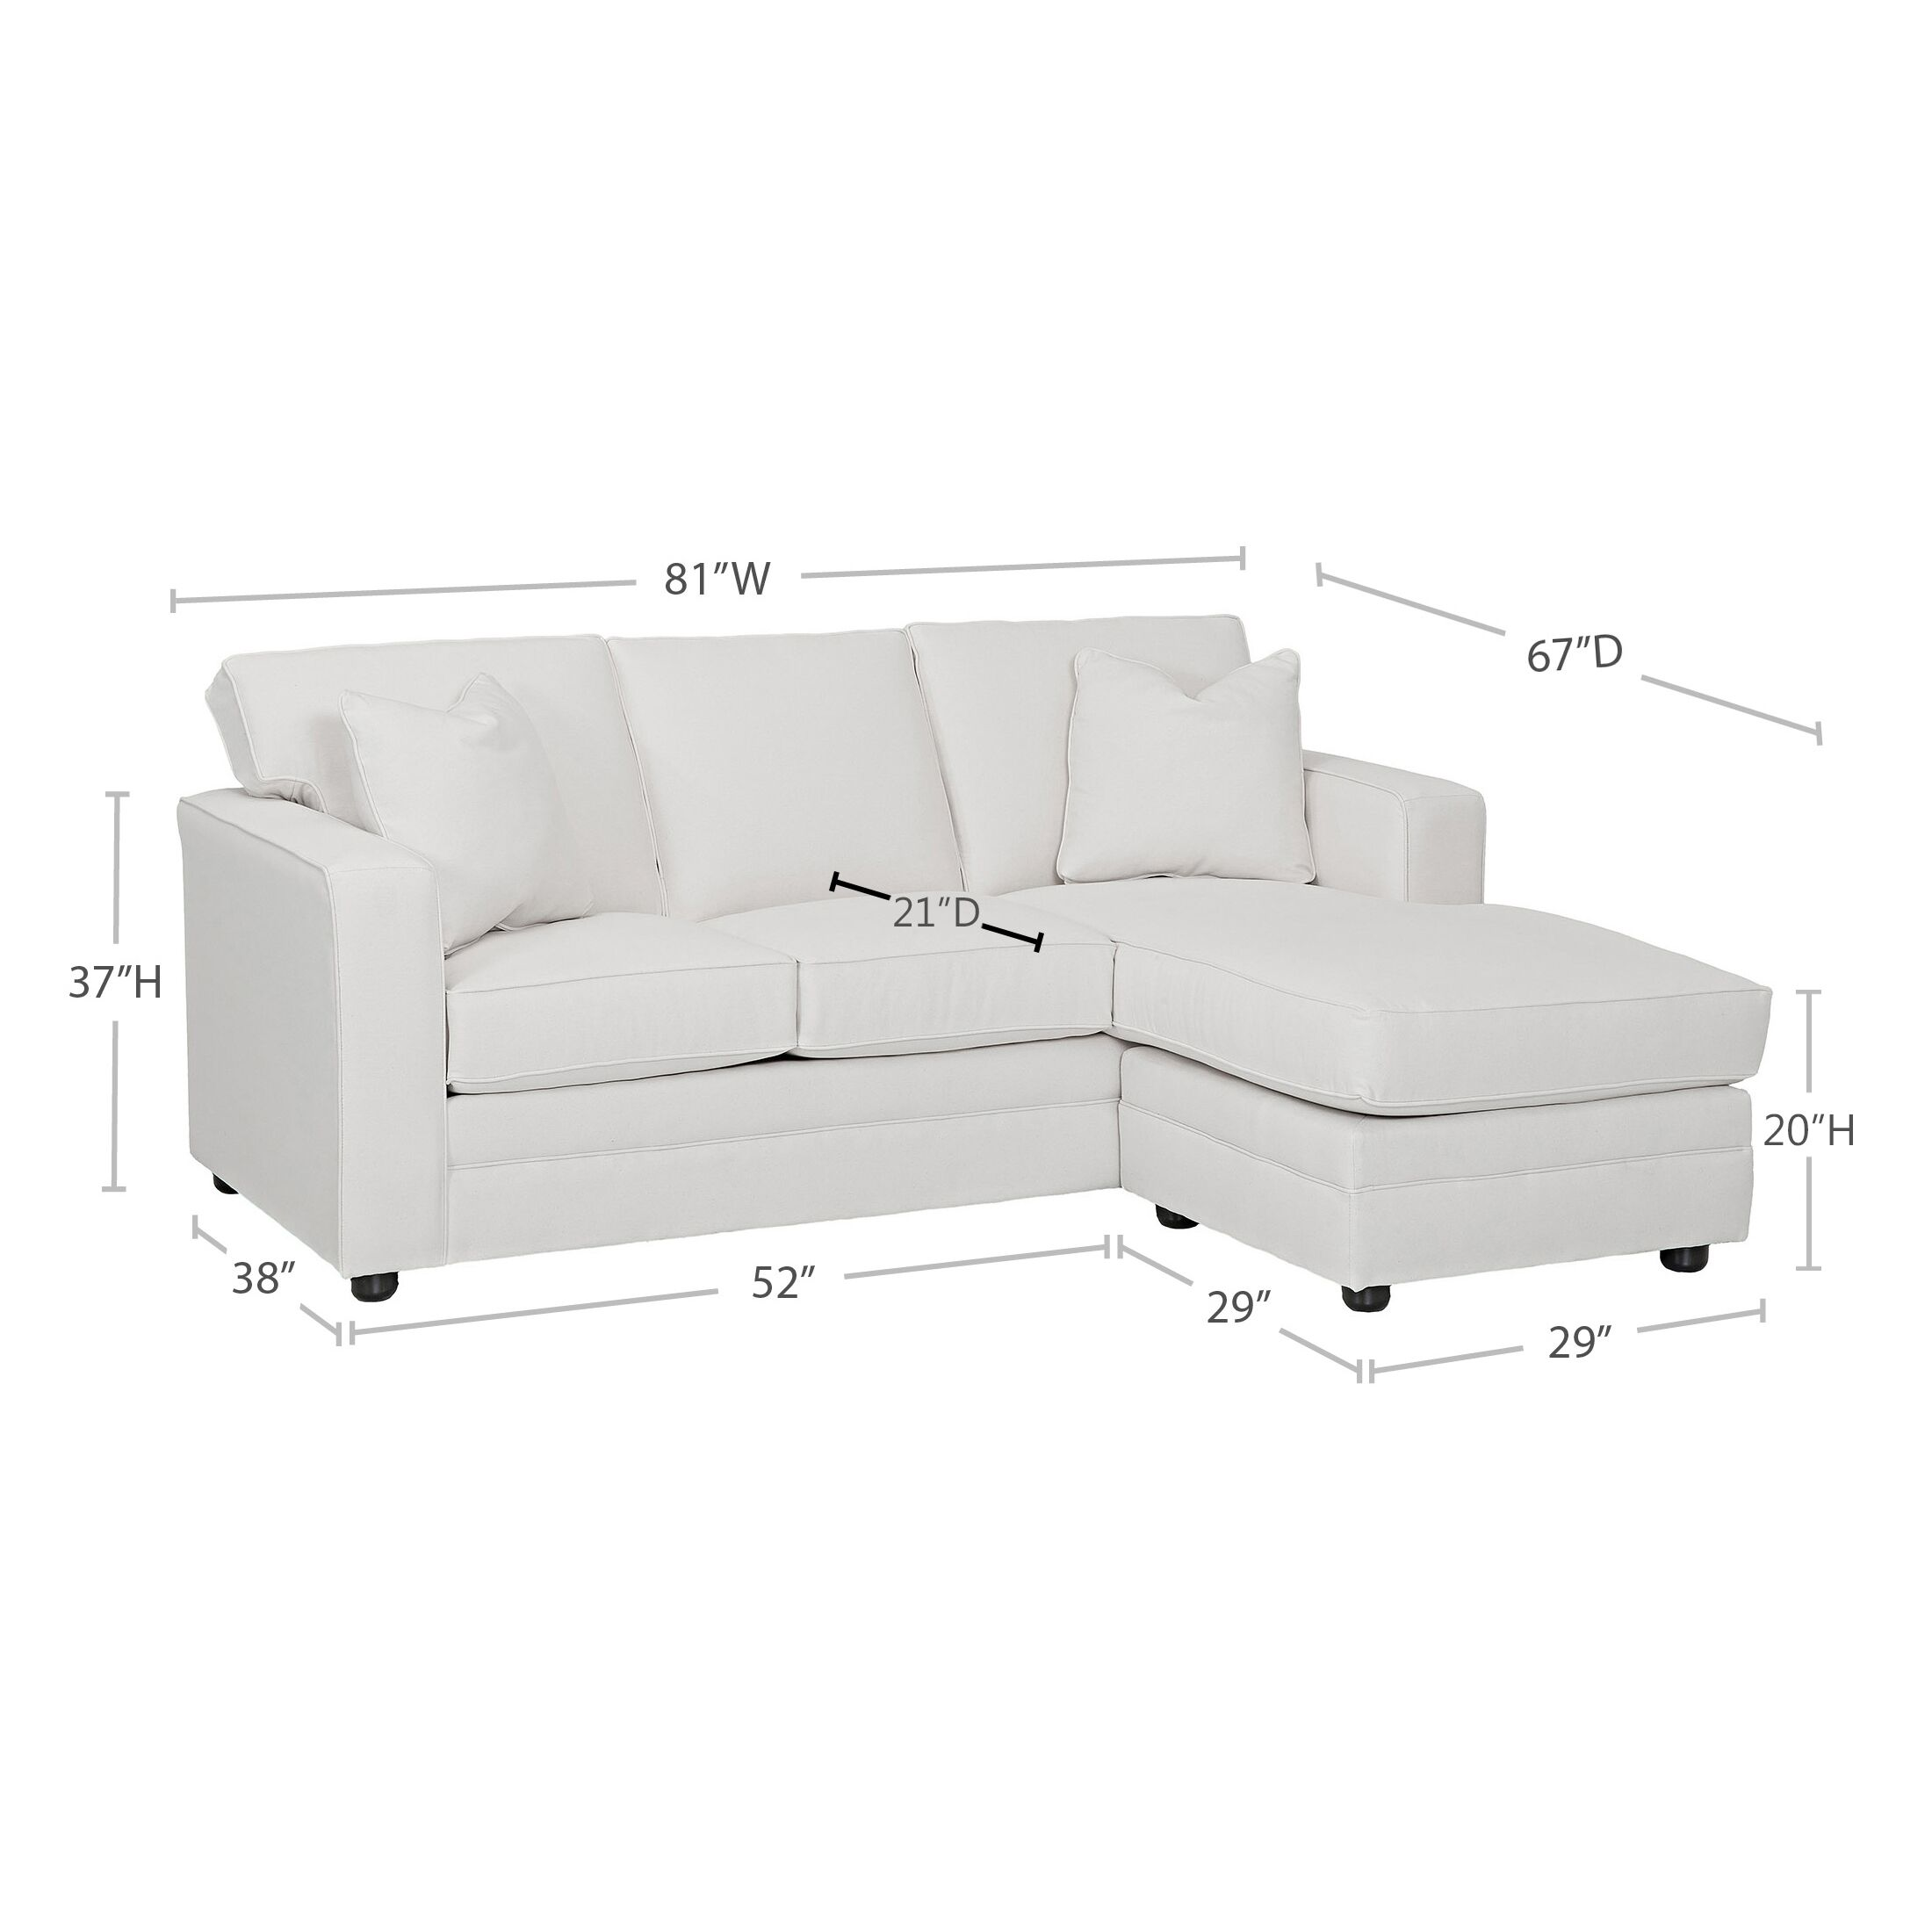 Andrew Reversible Sectional Body Fabric: Zula Linen, Pillow Fabric: Pebble Greystone, Piping Fabric: Spinnsol Butter